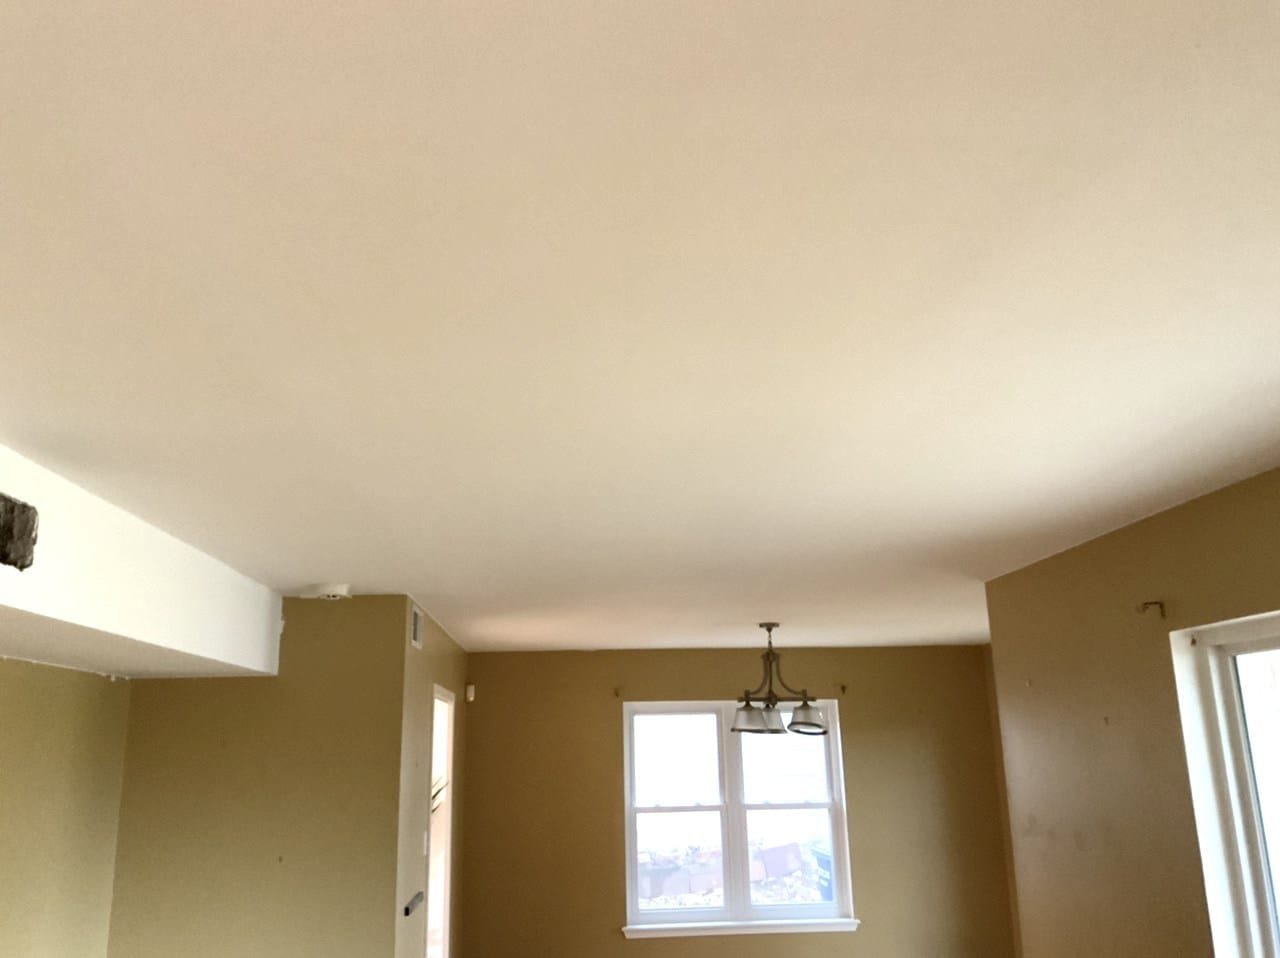 ceiling after popcorn texture removal and painting